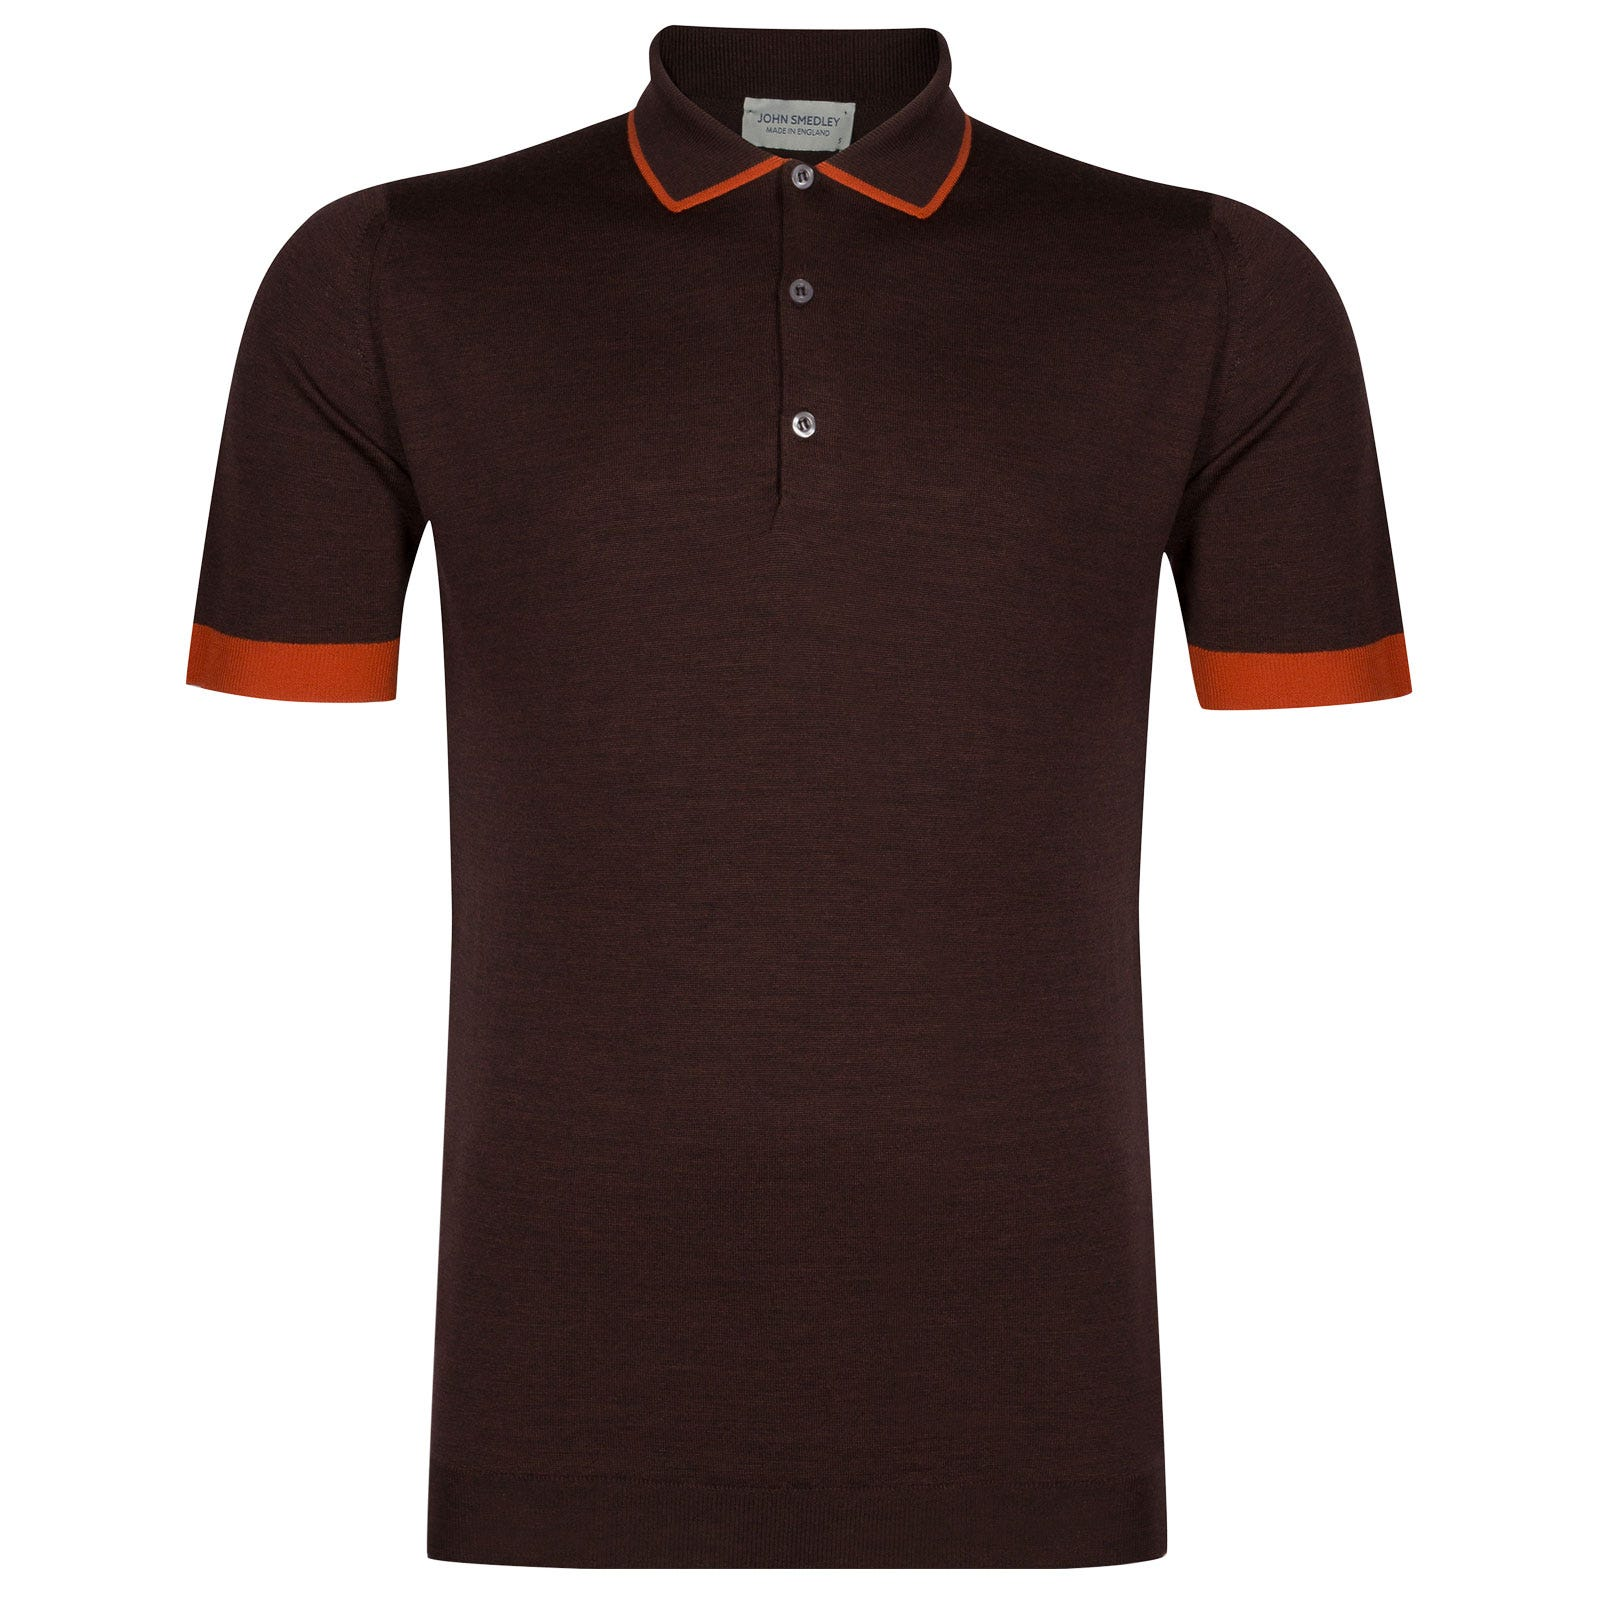 John Smedley nailsea Merino Wool Shirt in Chestnut/Flare Orange-S